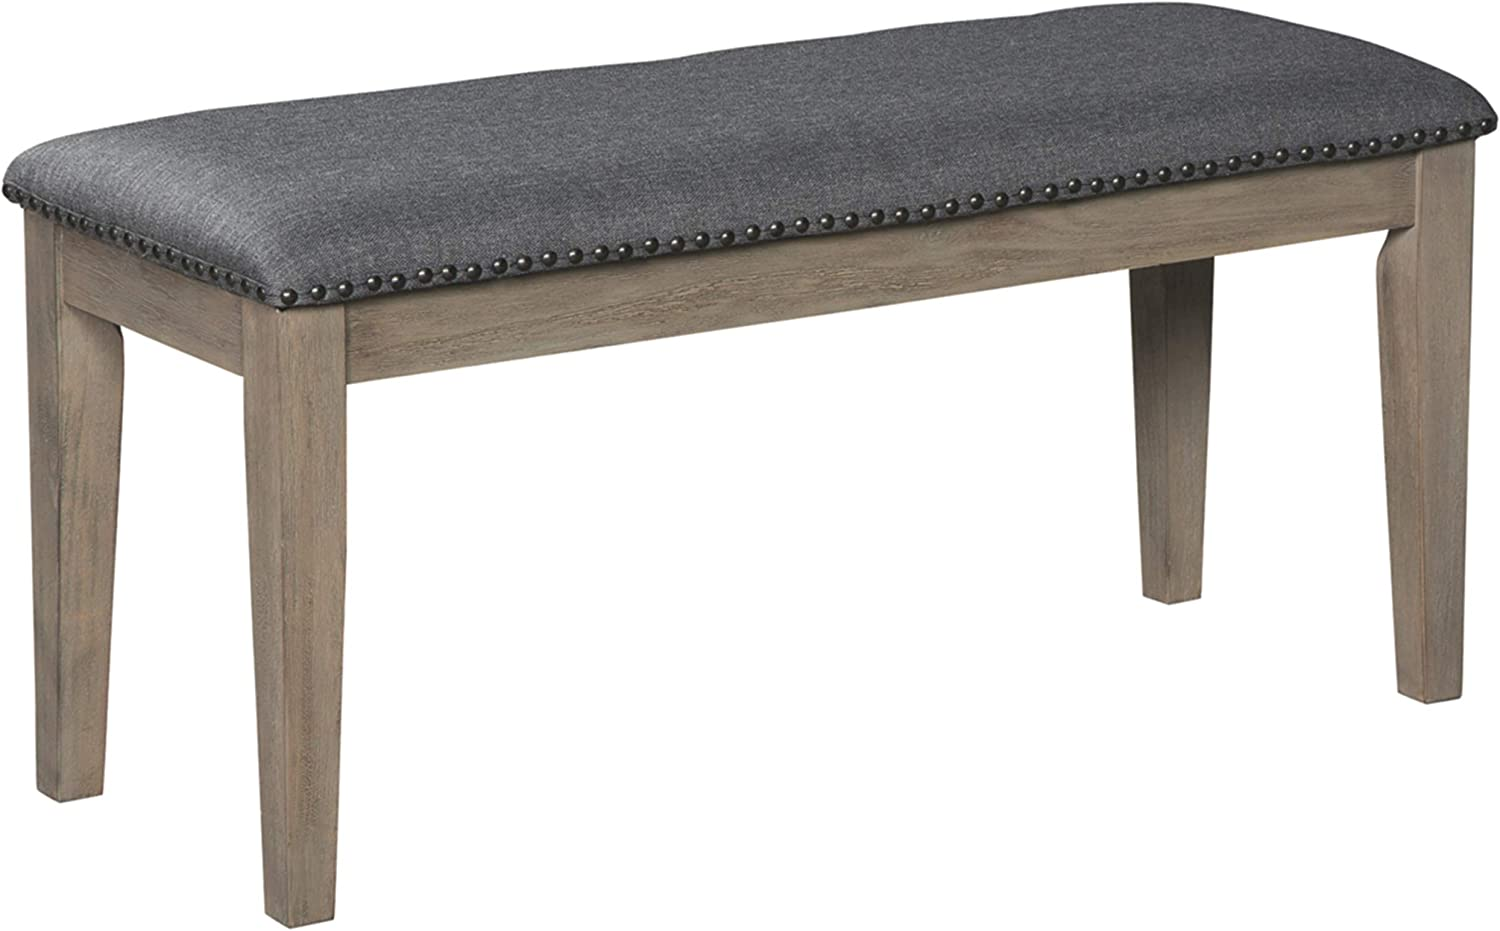 Signature Design By Ashley – Aldwin Upholstered Bench – Casual Style – Gray